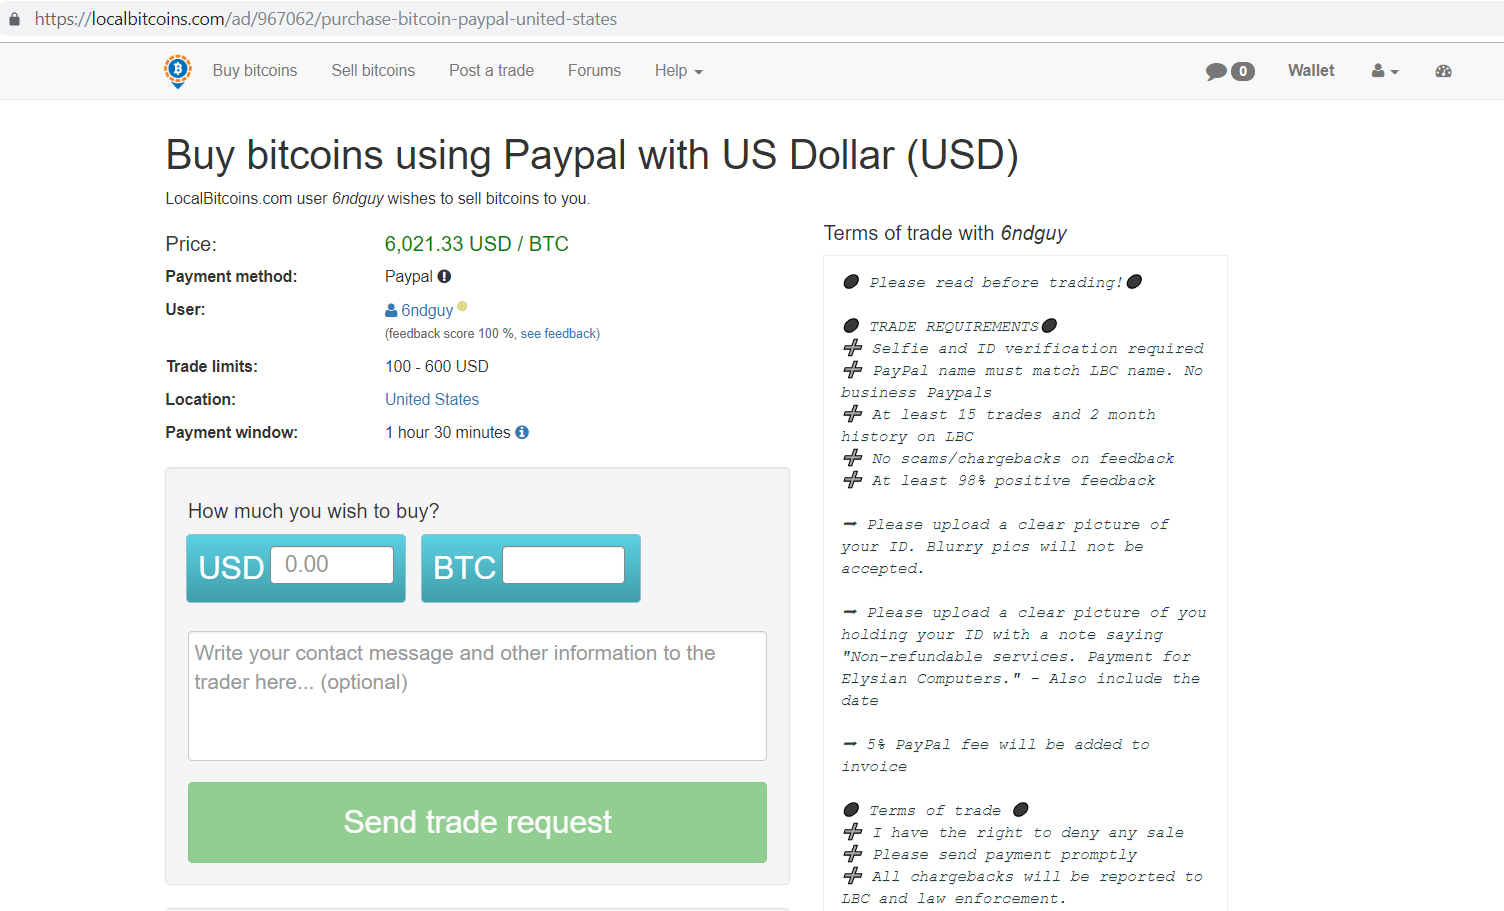 Localbitcoins.com buy bitcoins using paypal with us dollar page.